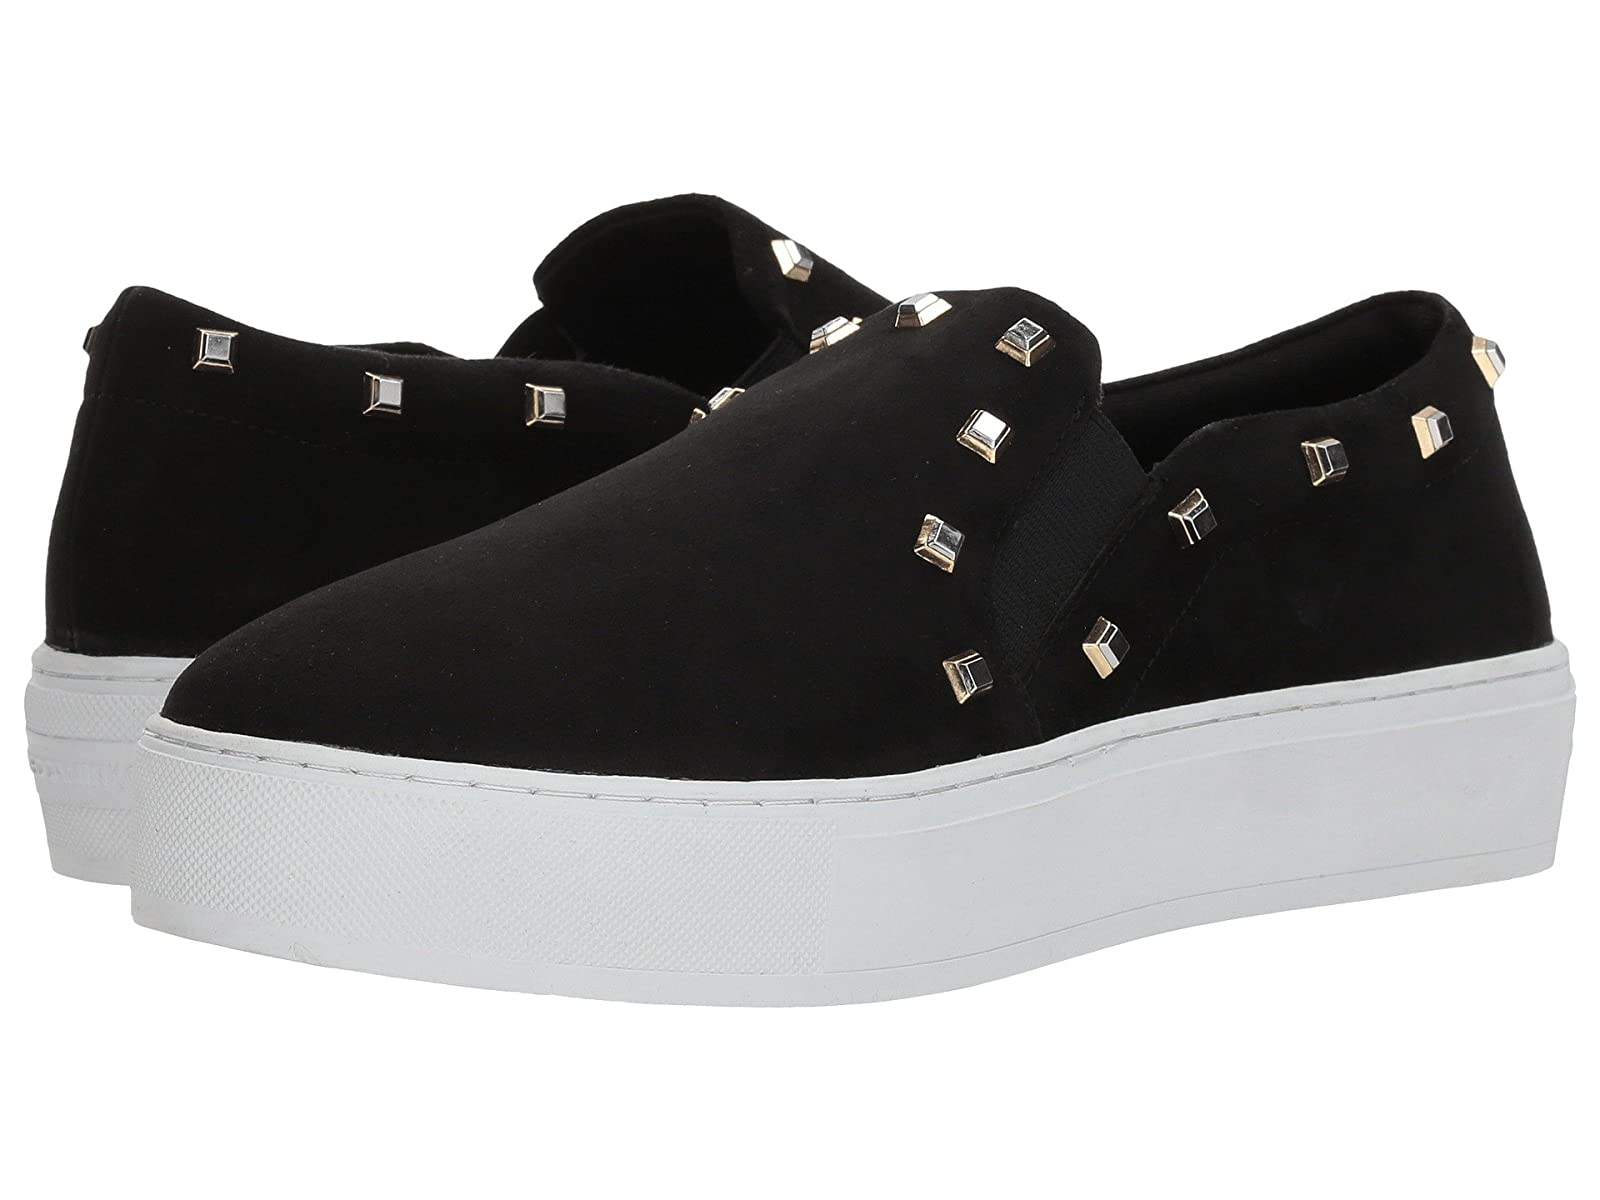 Rebecca Minkoff Nora StudCheap and distinctive eye-catching shoes